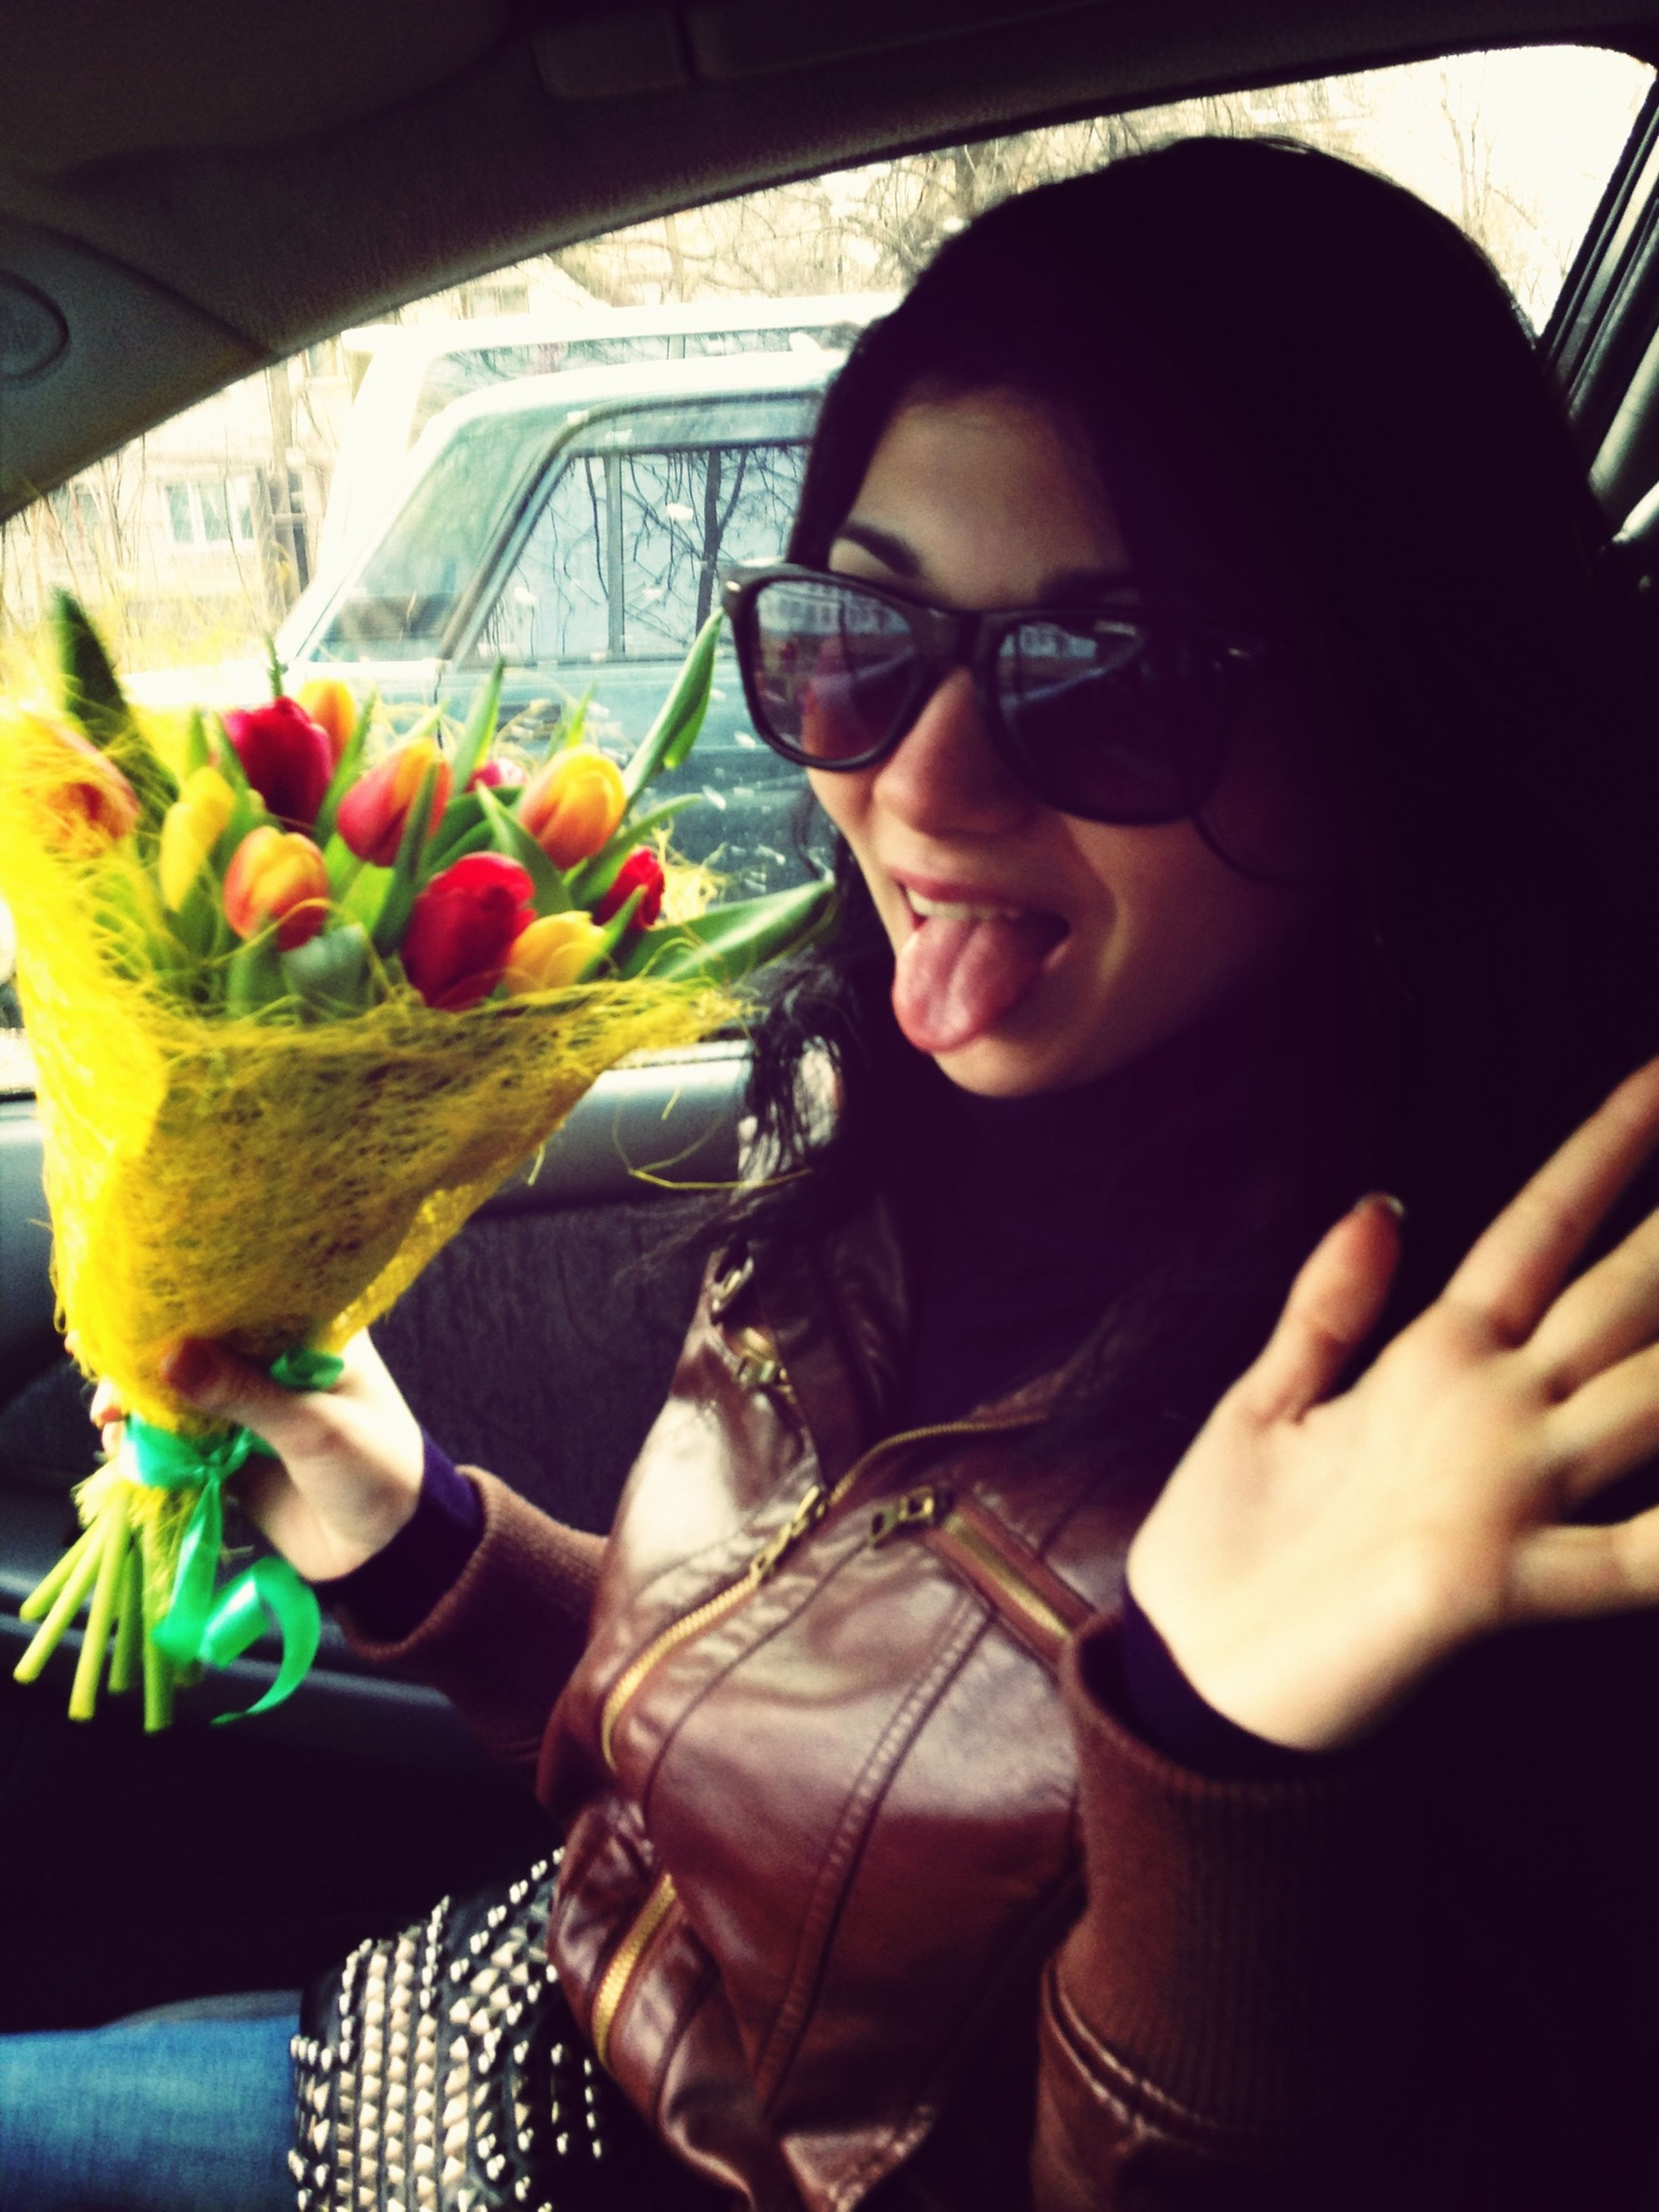 lifestyles, holding, person, leisure activity, young adult, young women, casual clothing, front view, looking at camera, portrait, indoors, sunglasses, sitting, smiling, flower, car, headshot, freshness